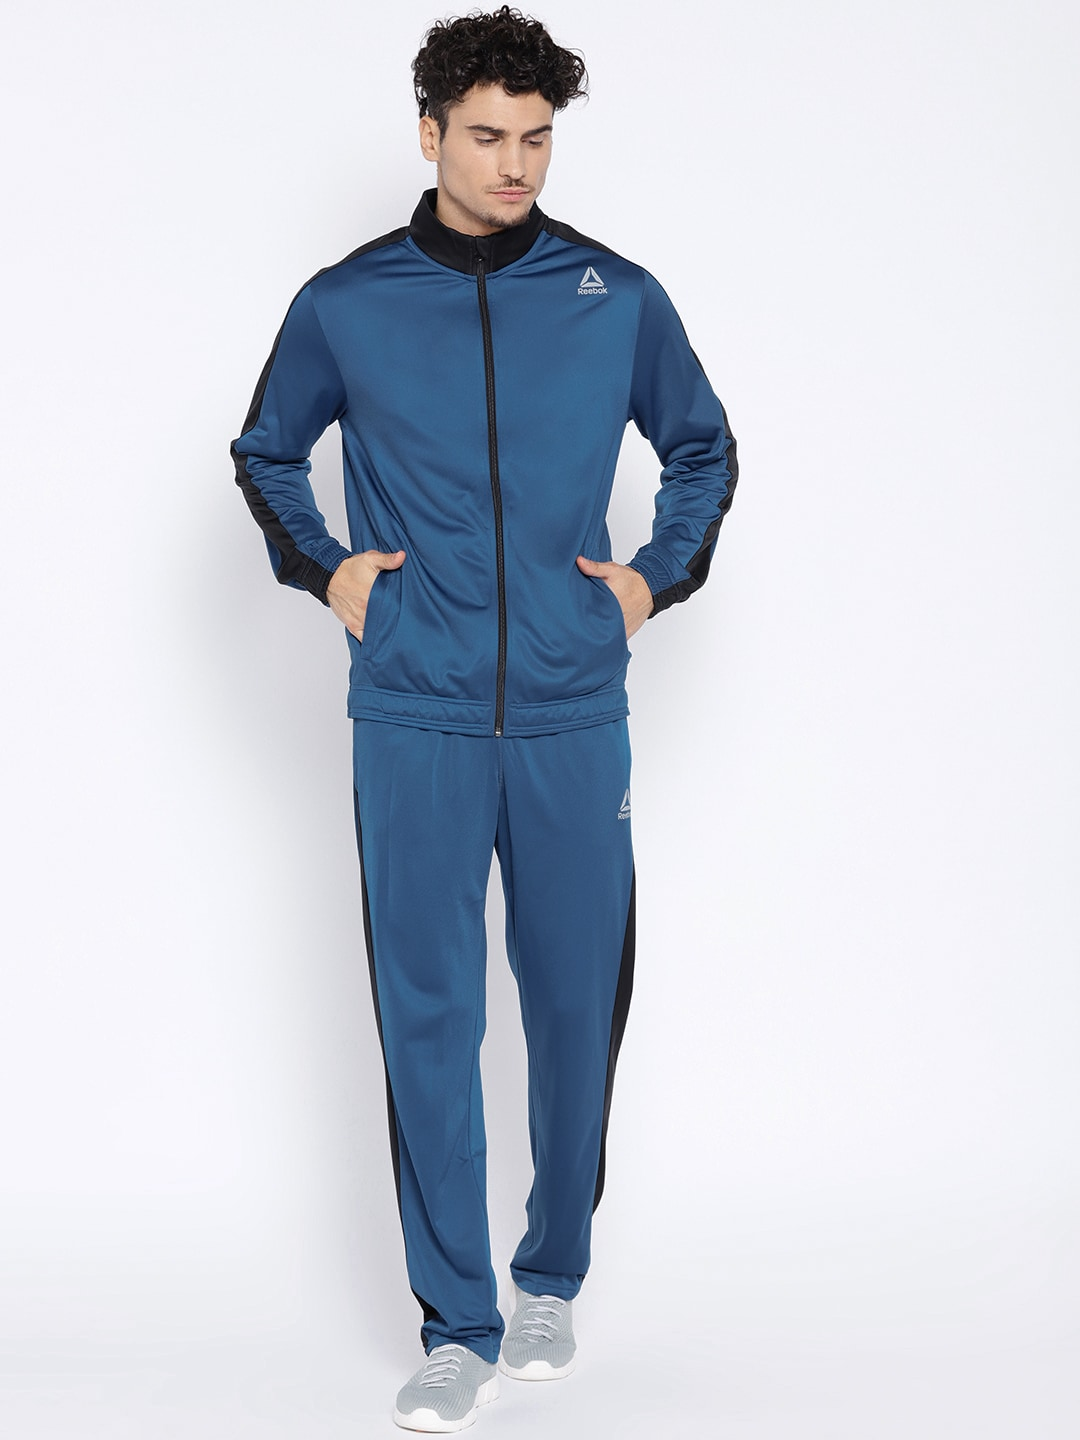 ee830f63a Reebok Caps Tracksuits - Buy Reebok Caps Tracksuits online in India